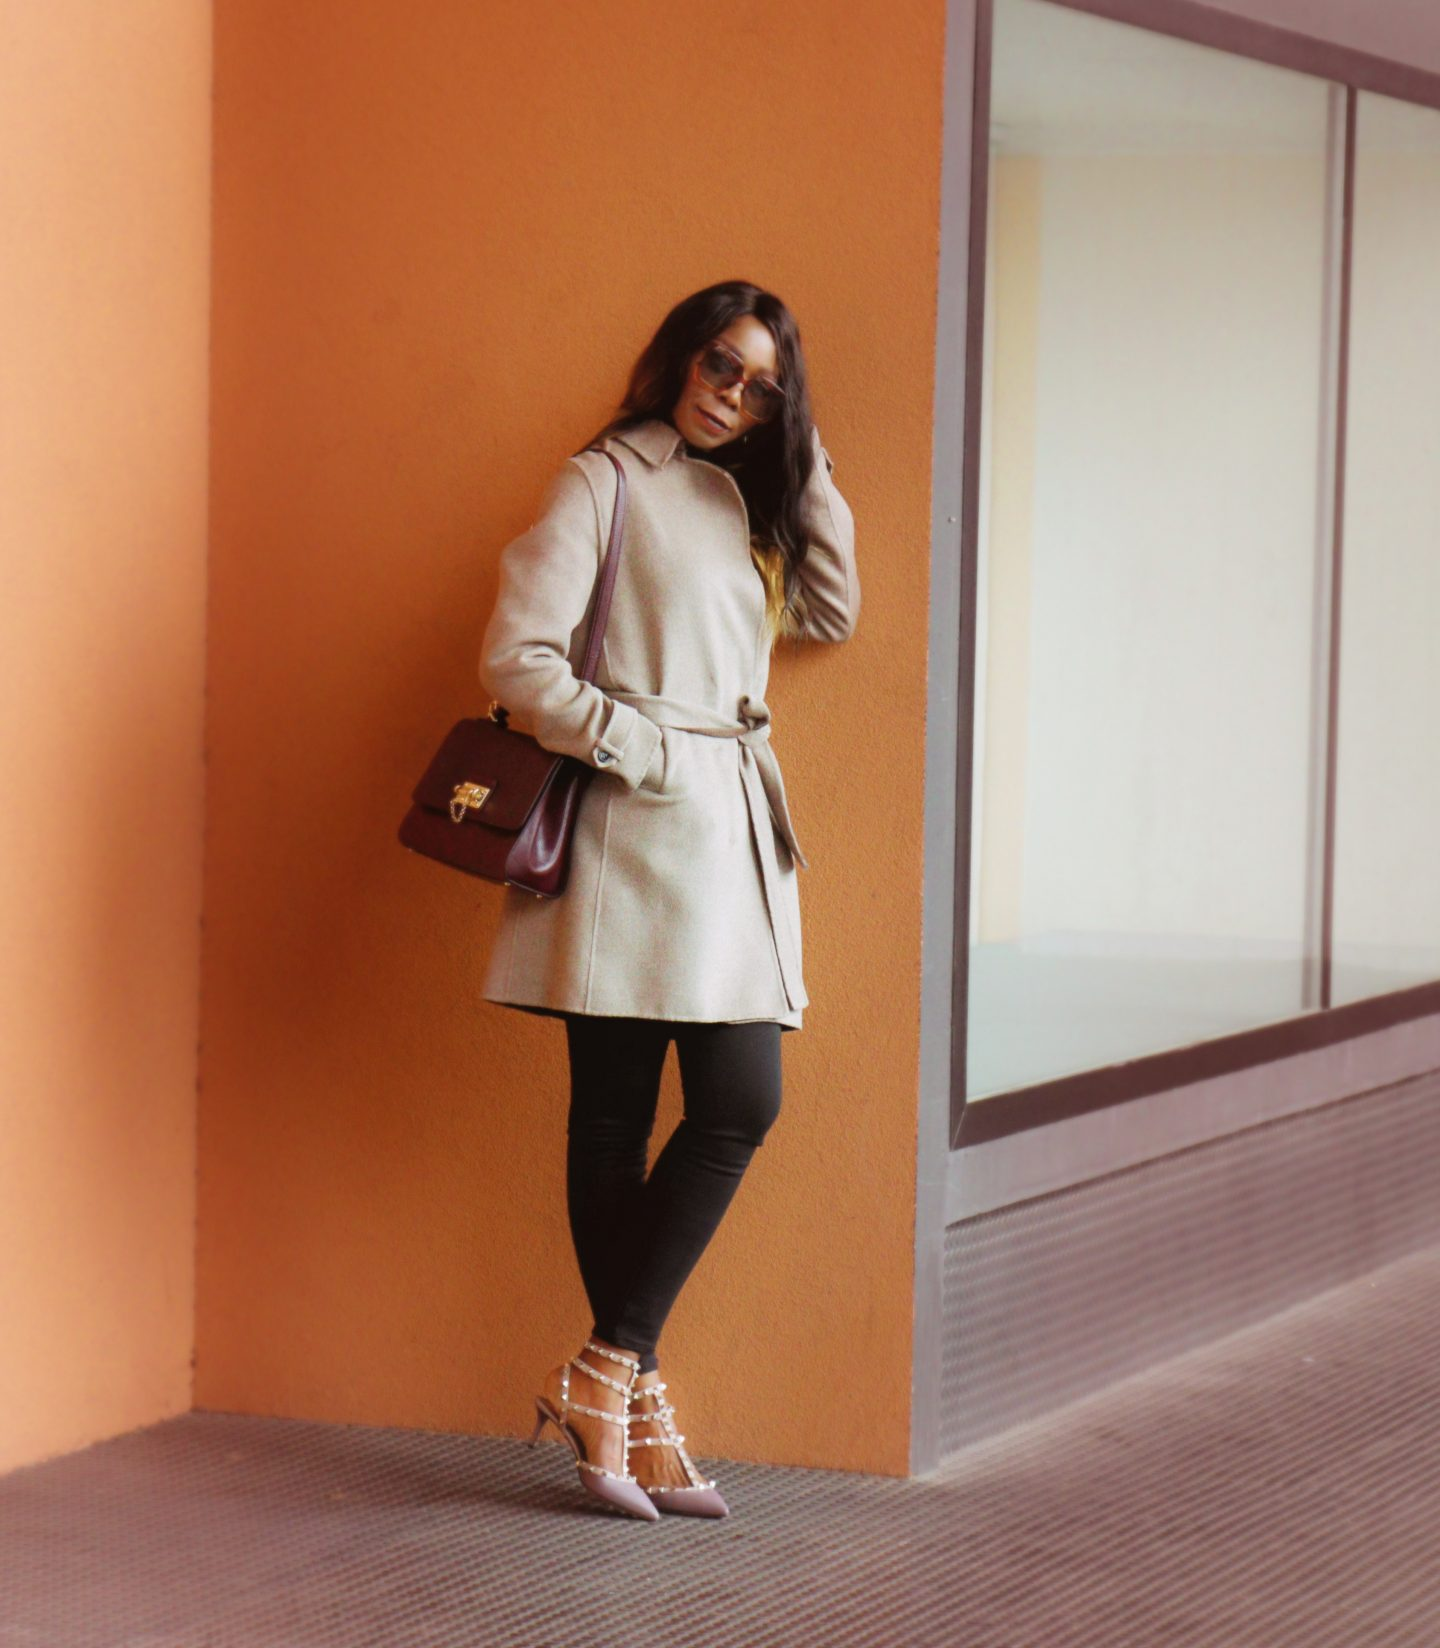 On Revamped Metallic Blouse For Fall/Winter